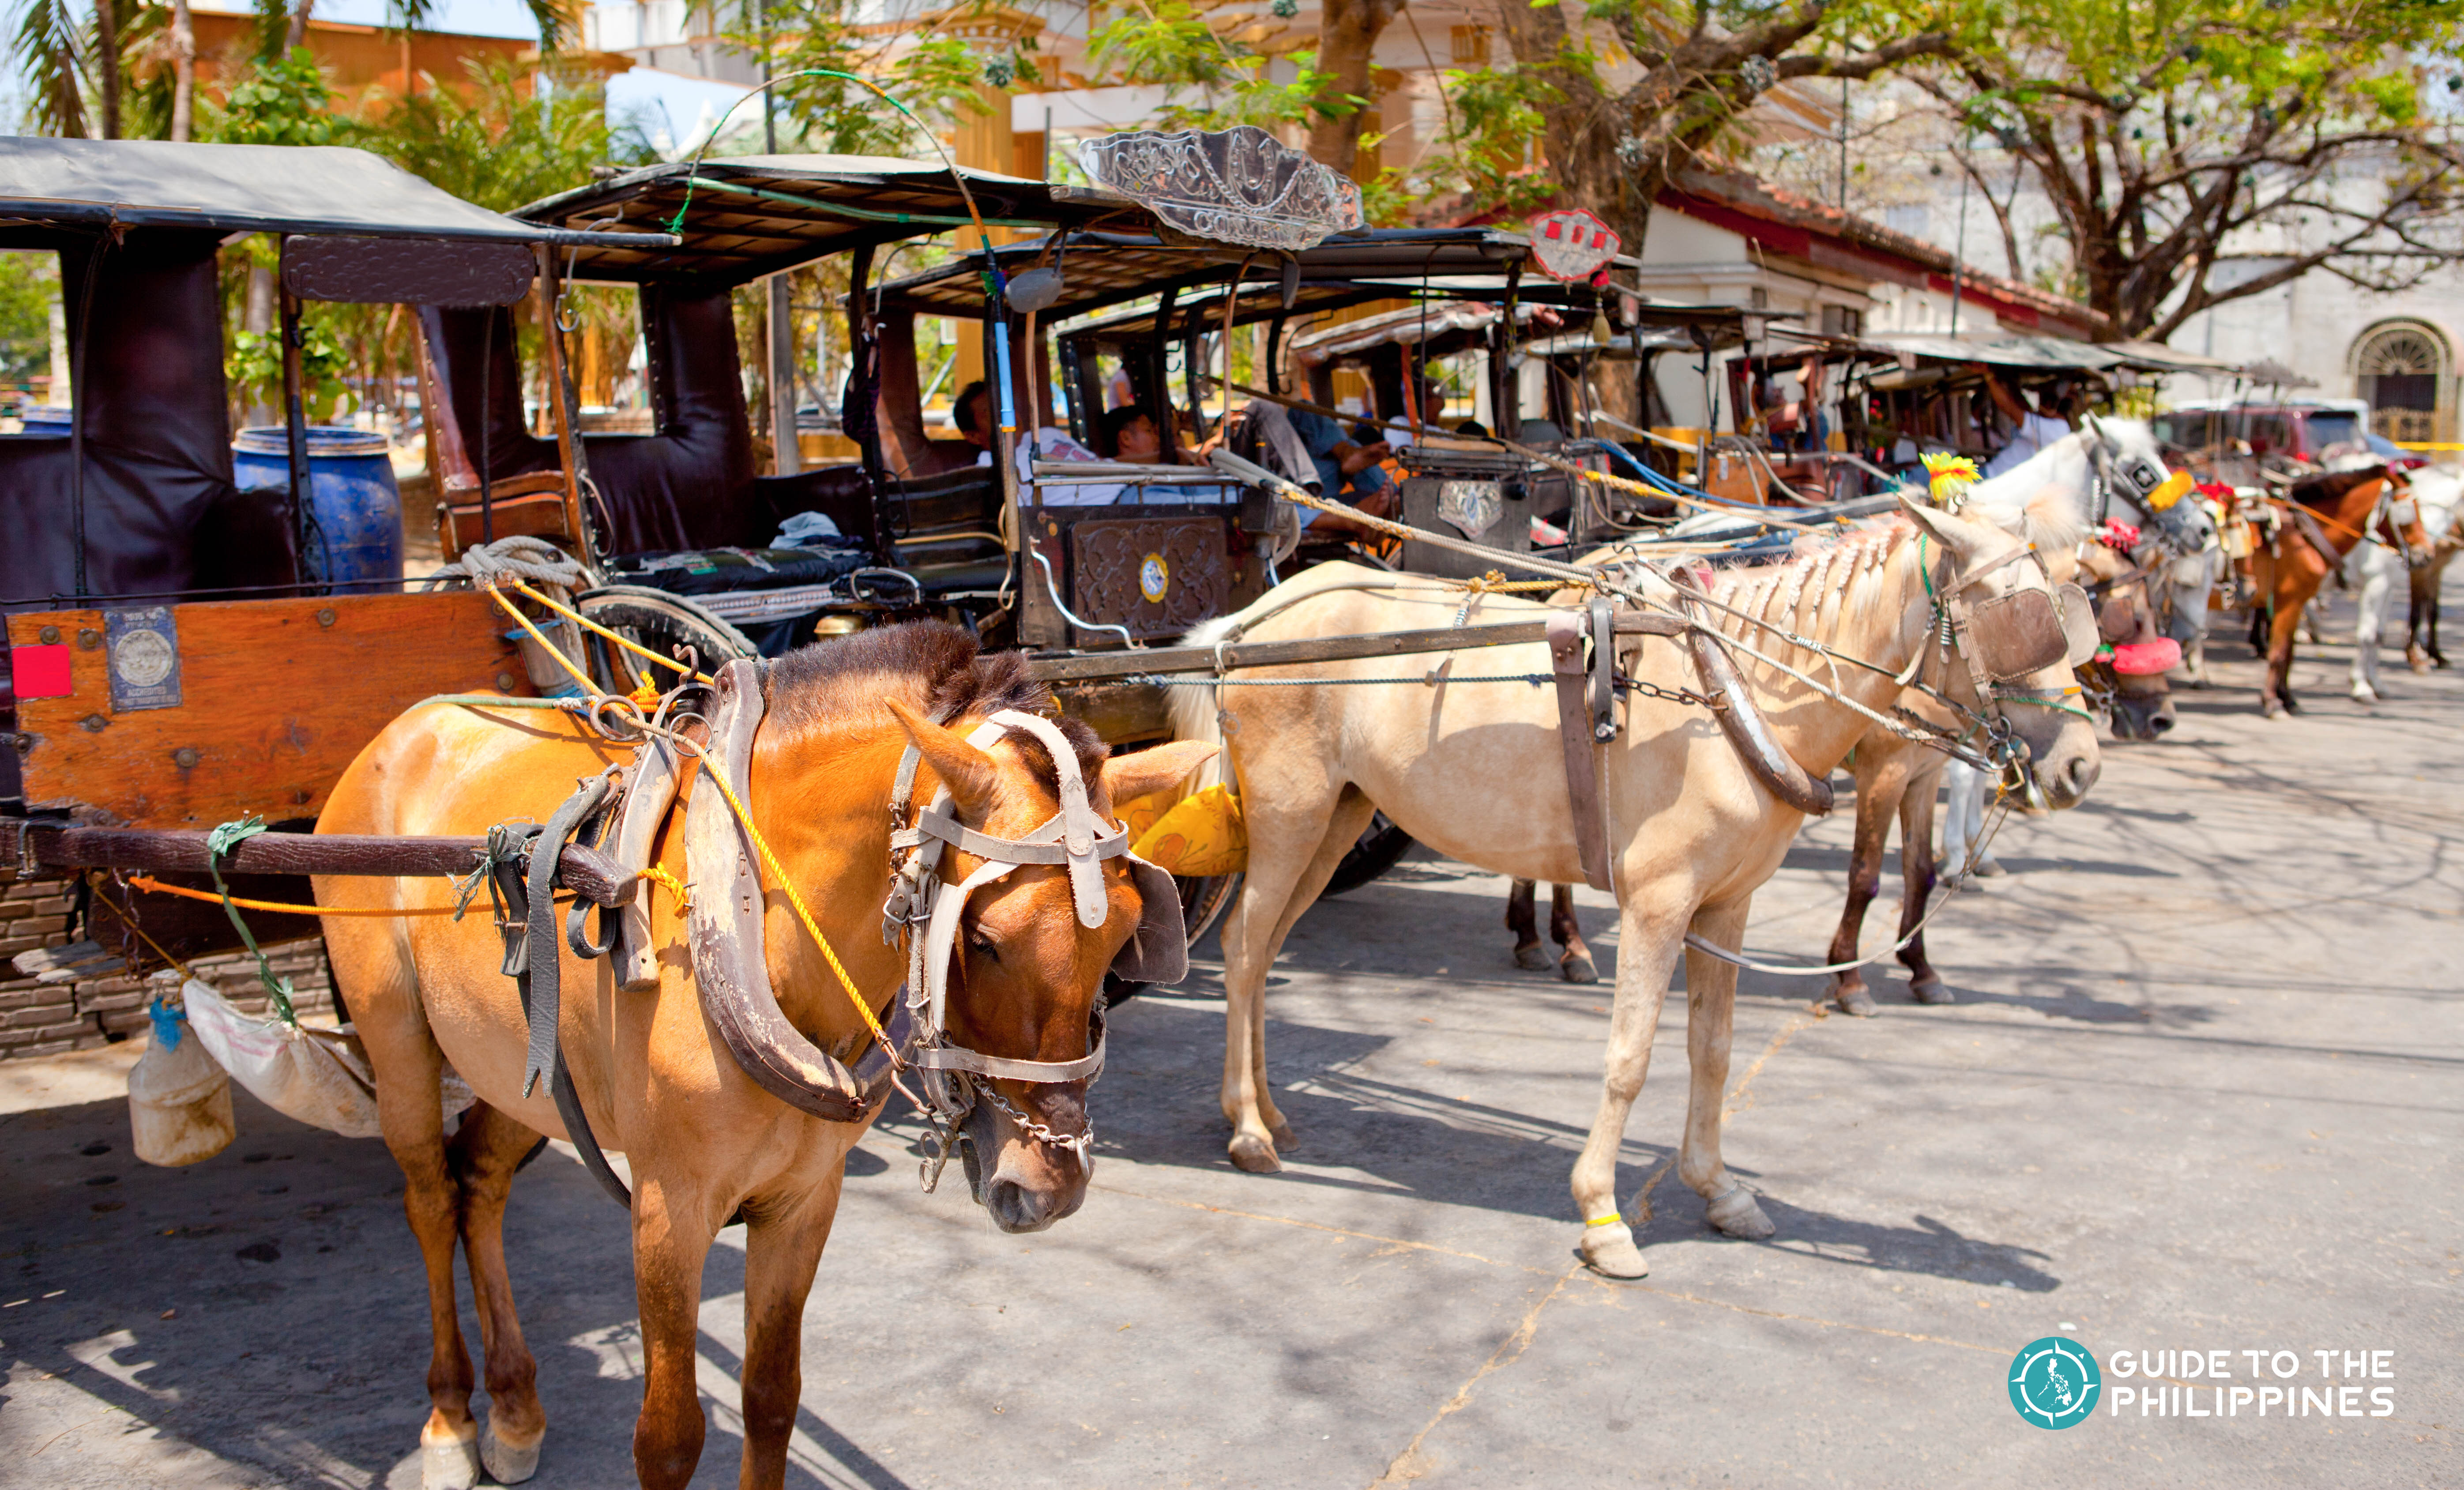 Vigan Ilocos Sur Travel Guide:  What to Do + Hotels + COVID-19 Travel Requirements